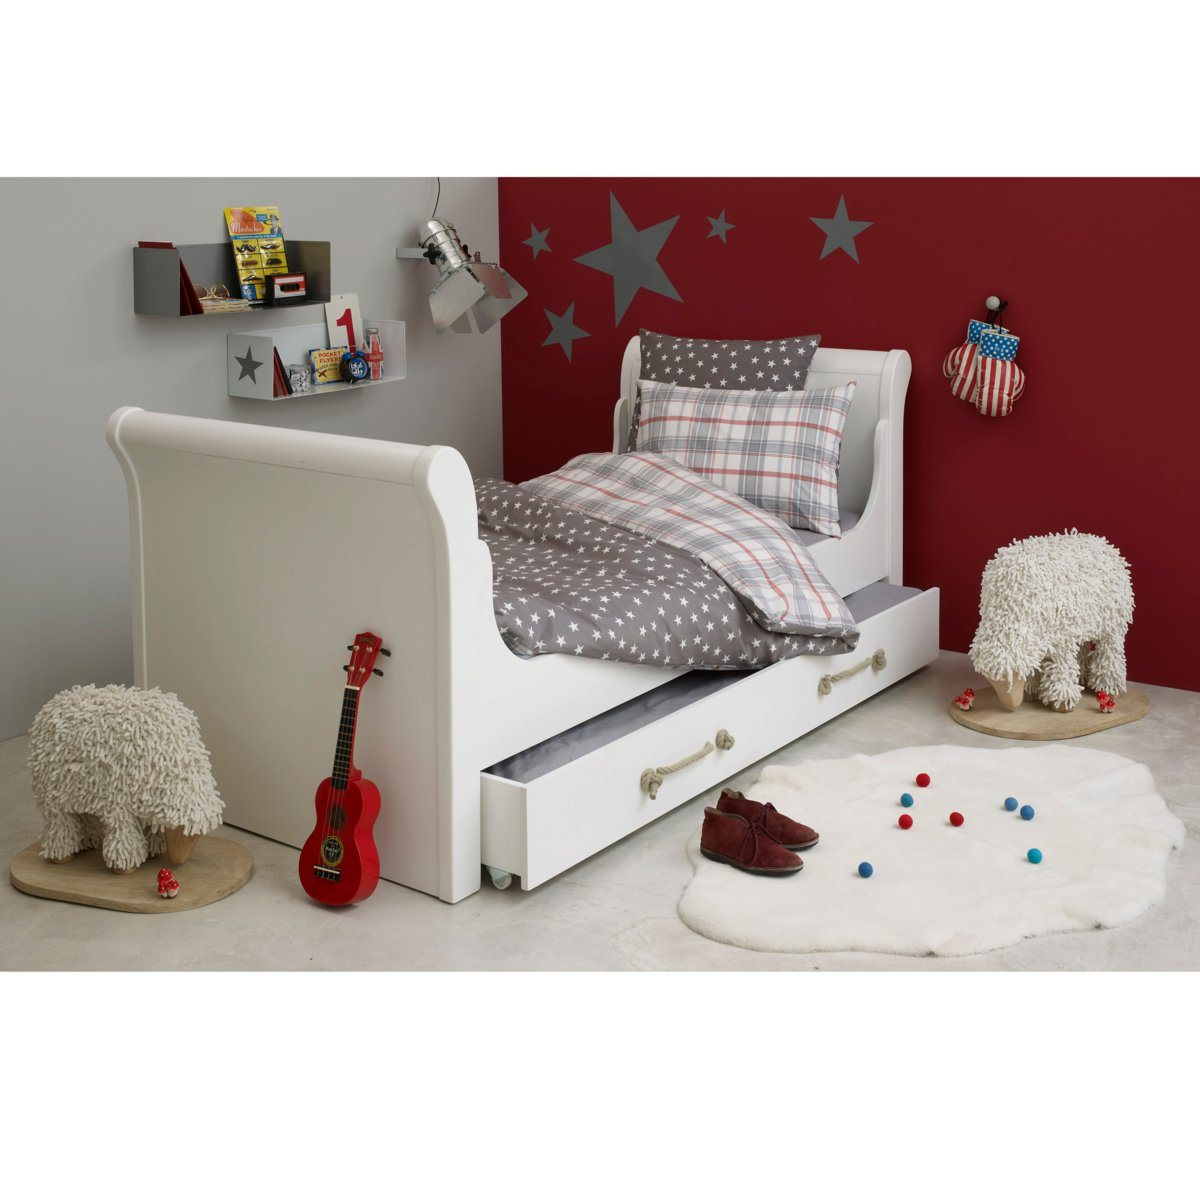 chambre enfant rouge et blanc ampm dekobook. Black Bedroom Furniture Sets. Home Design Ideas